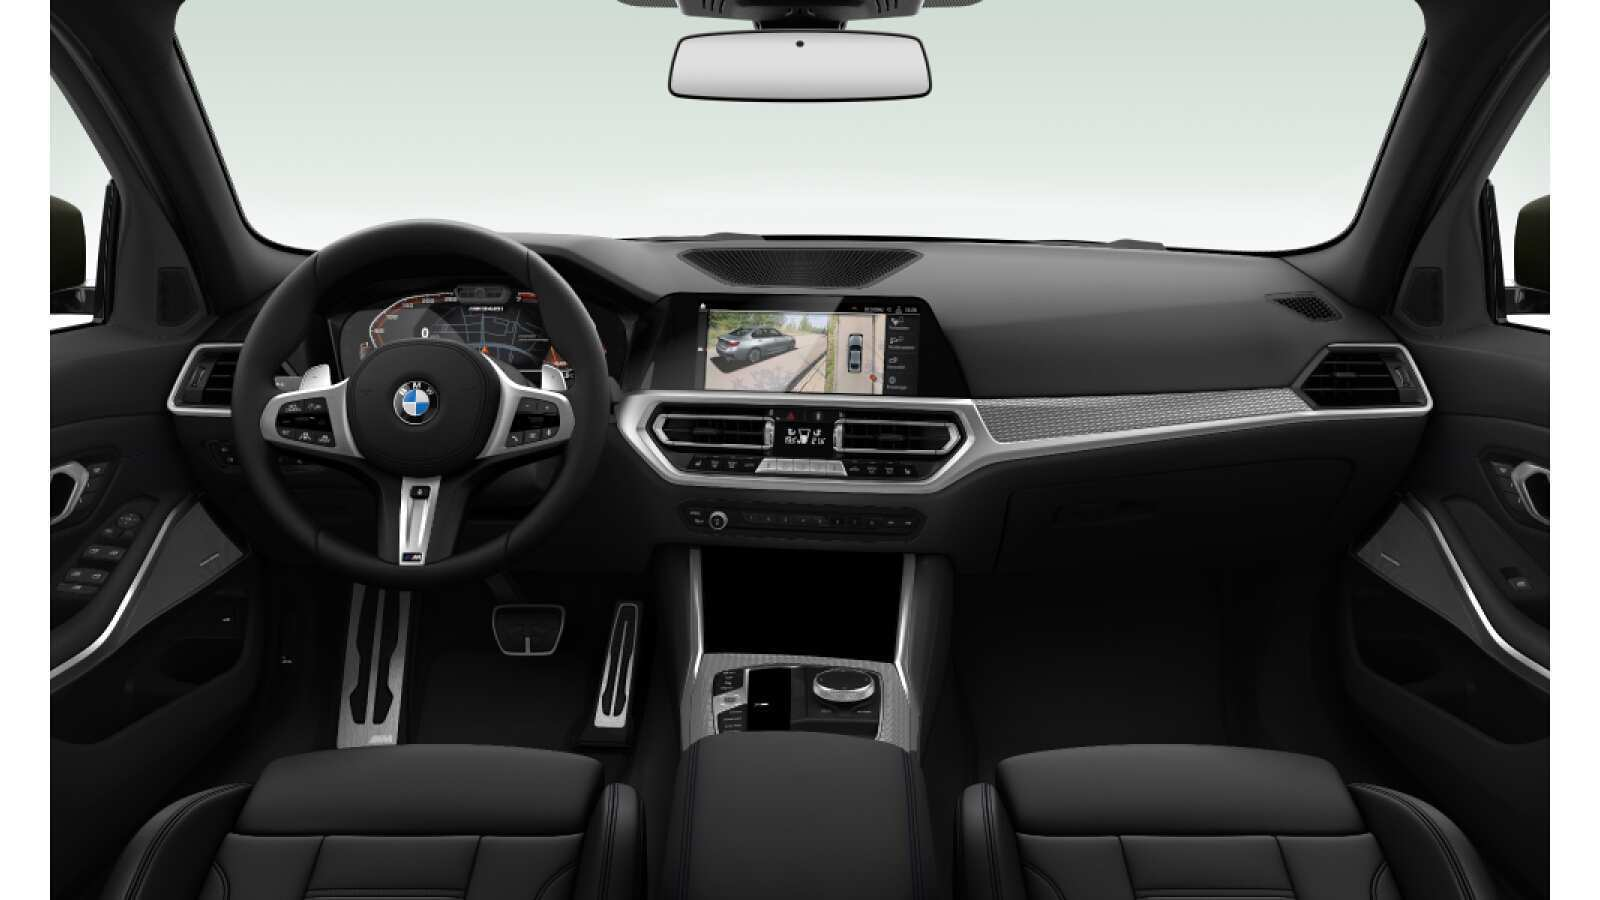 86 Best Review 2019 Bmw 3 Series Manual Transmission Interior by 2019 Bmw 3 Series Manual Transmission